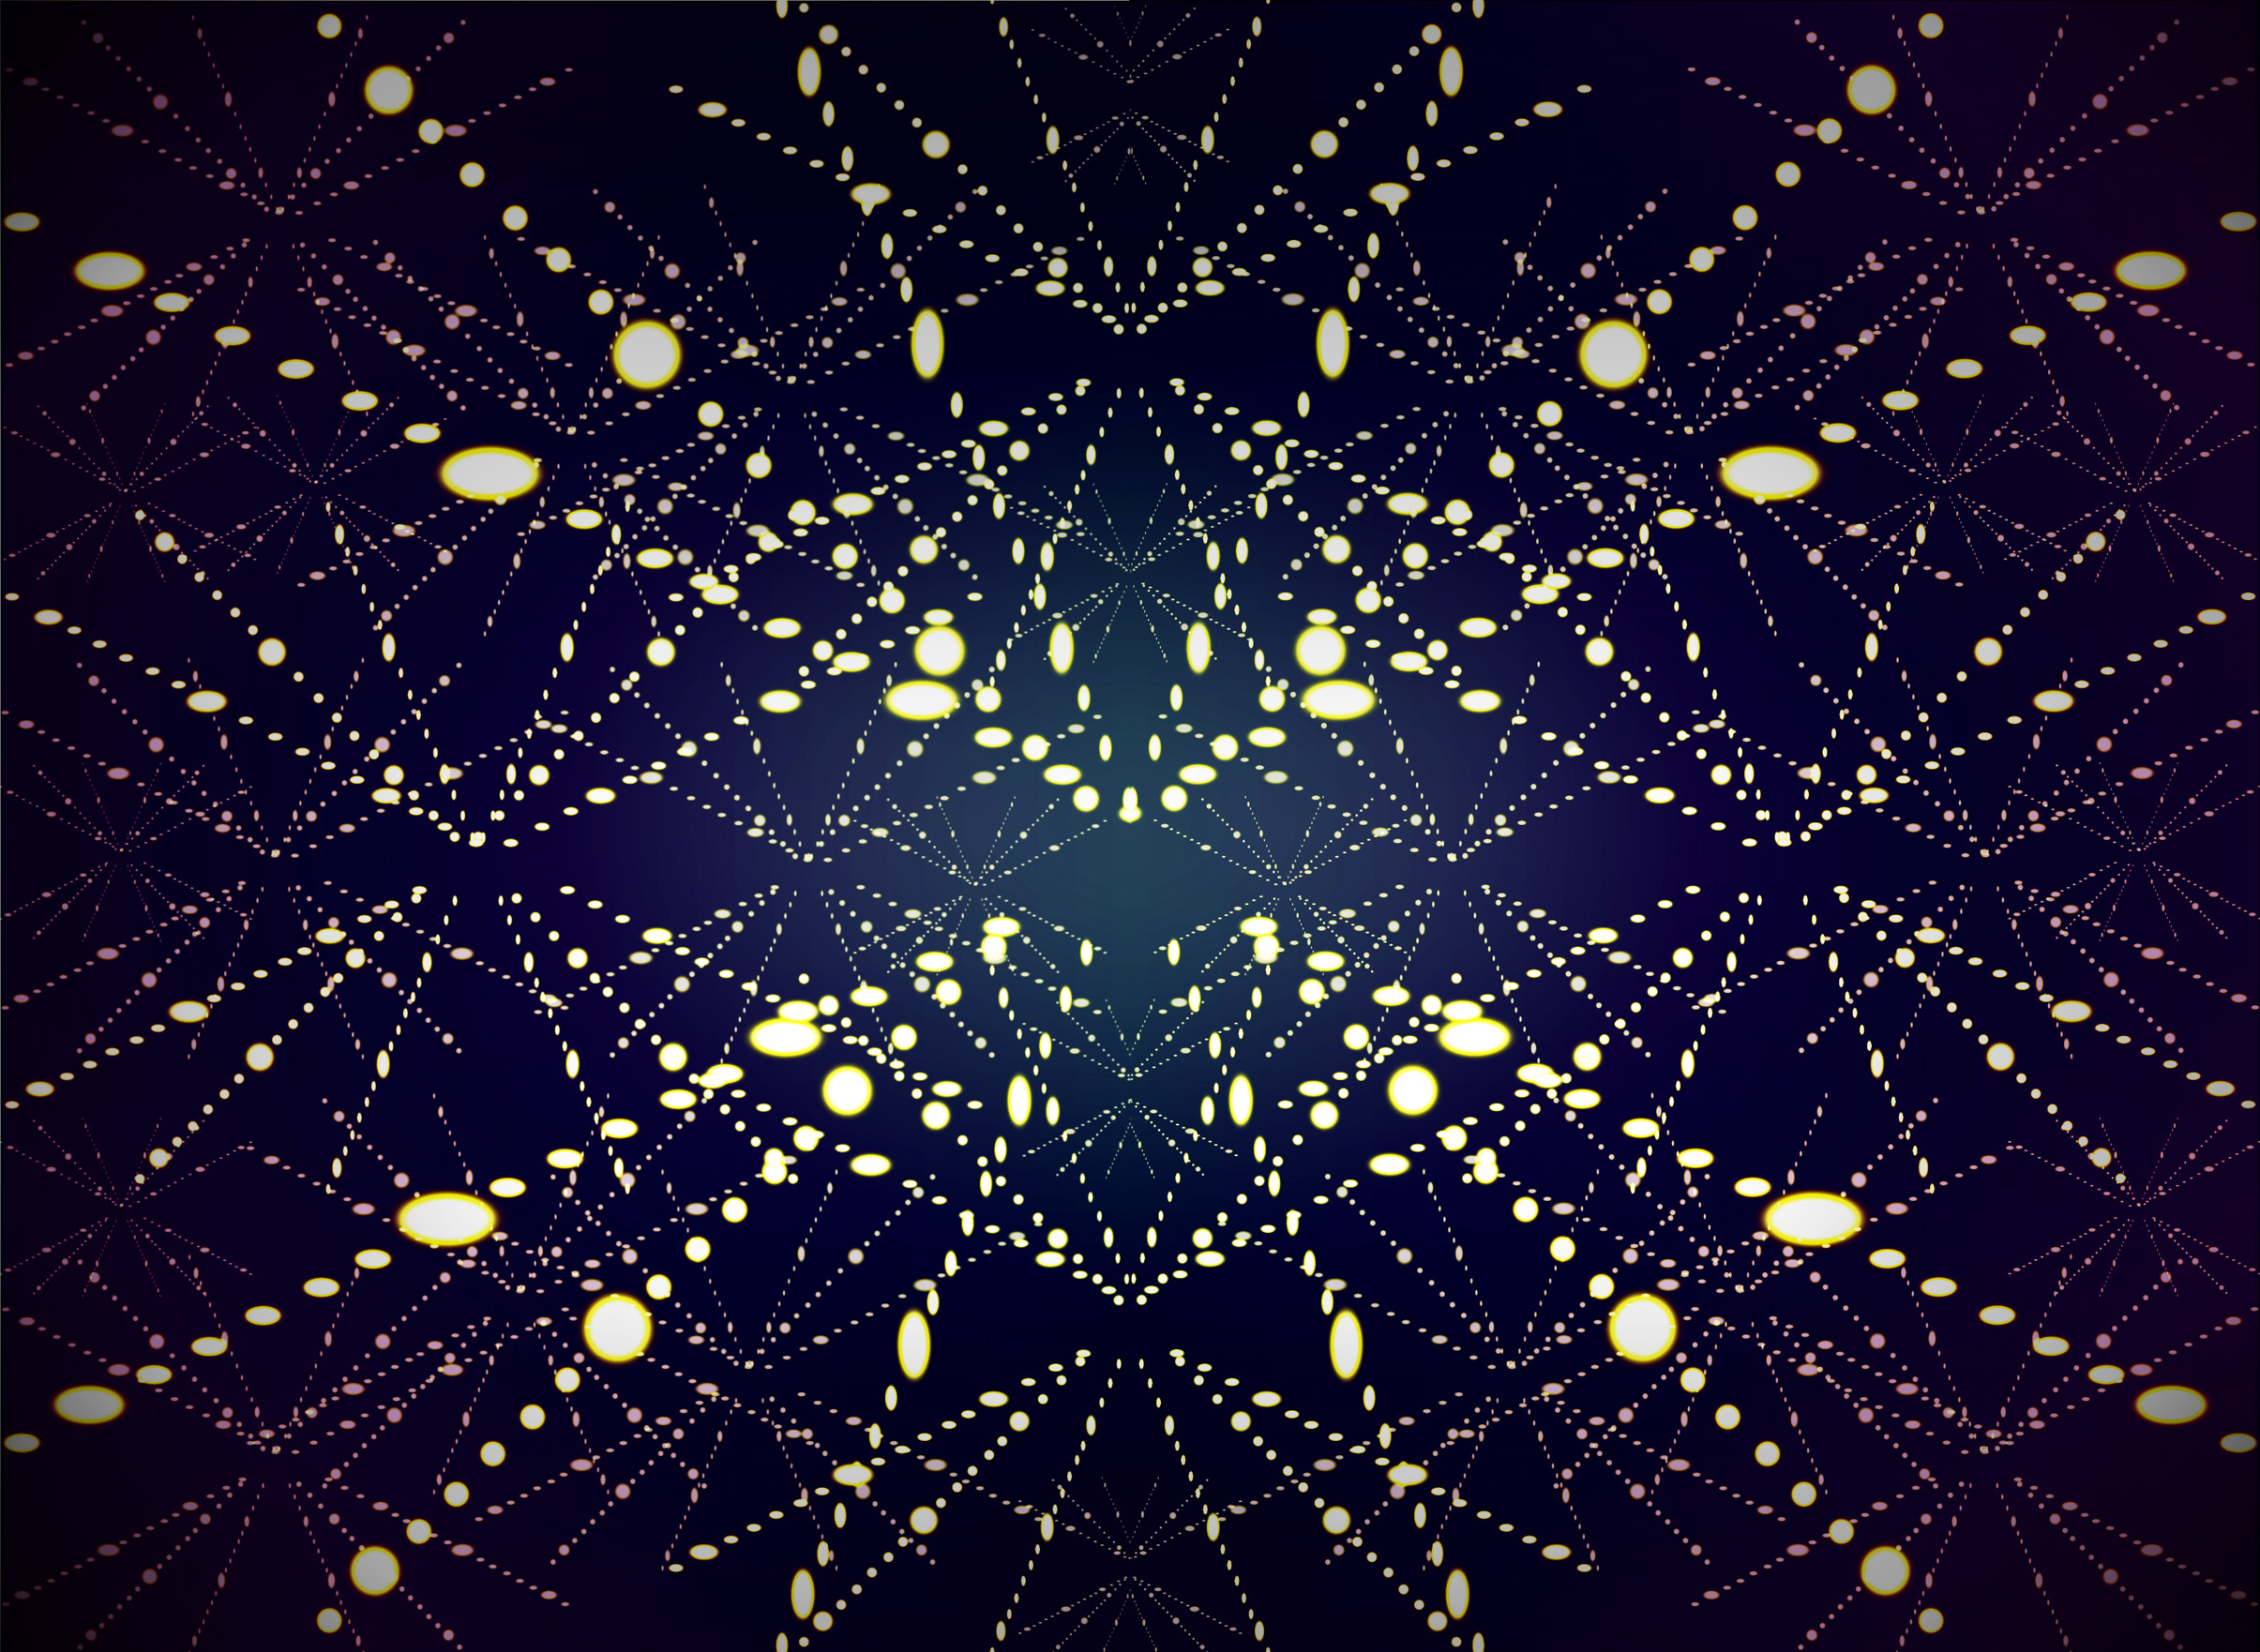 Starfield abstract pattern - Background, Abstract, Invitation, Light, Line, HQ Photo